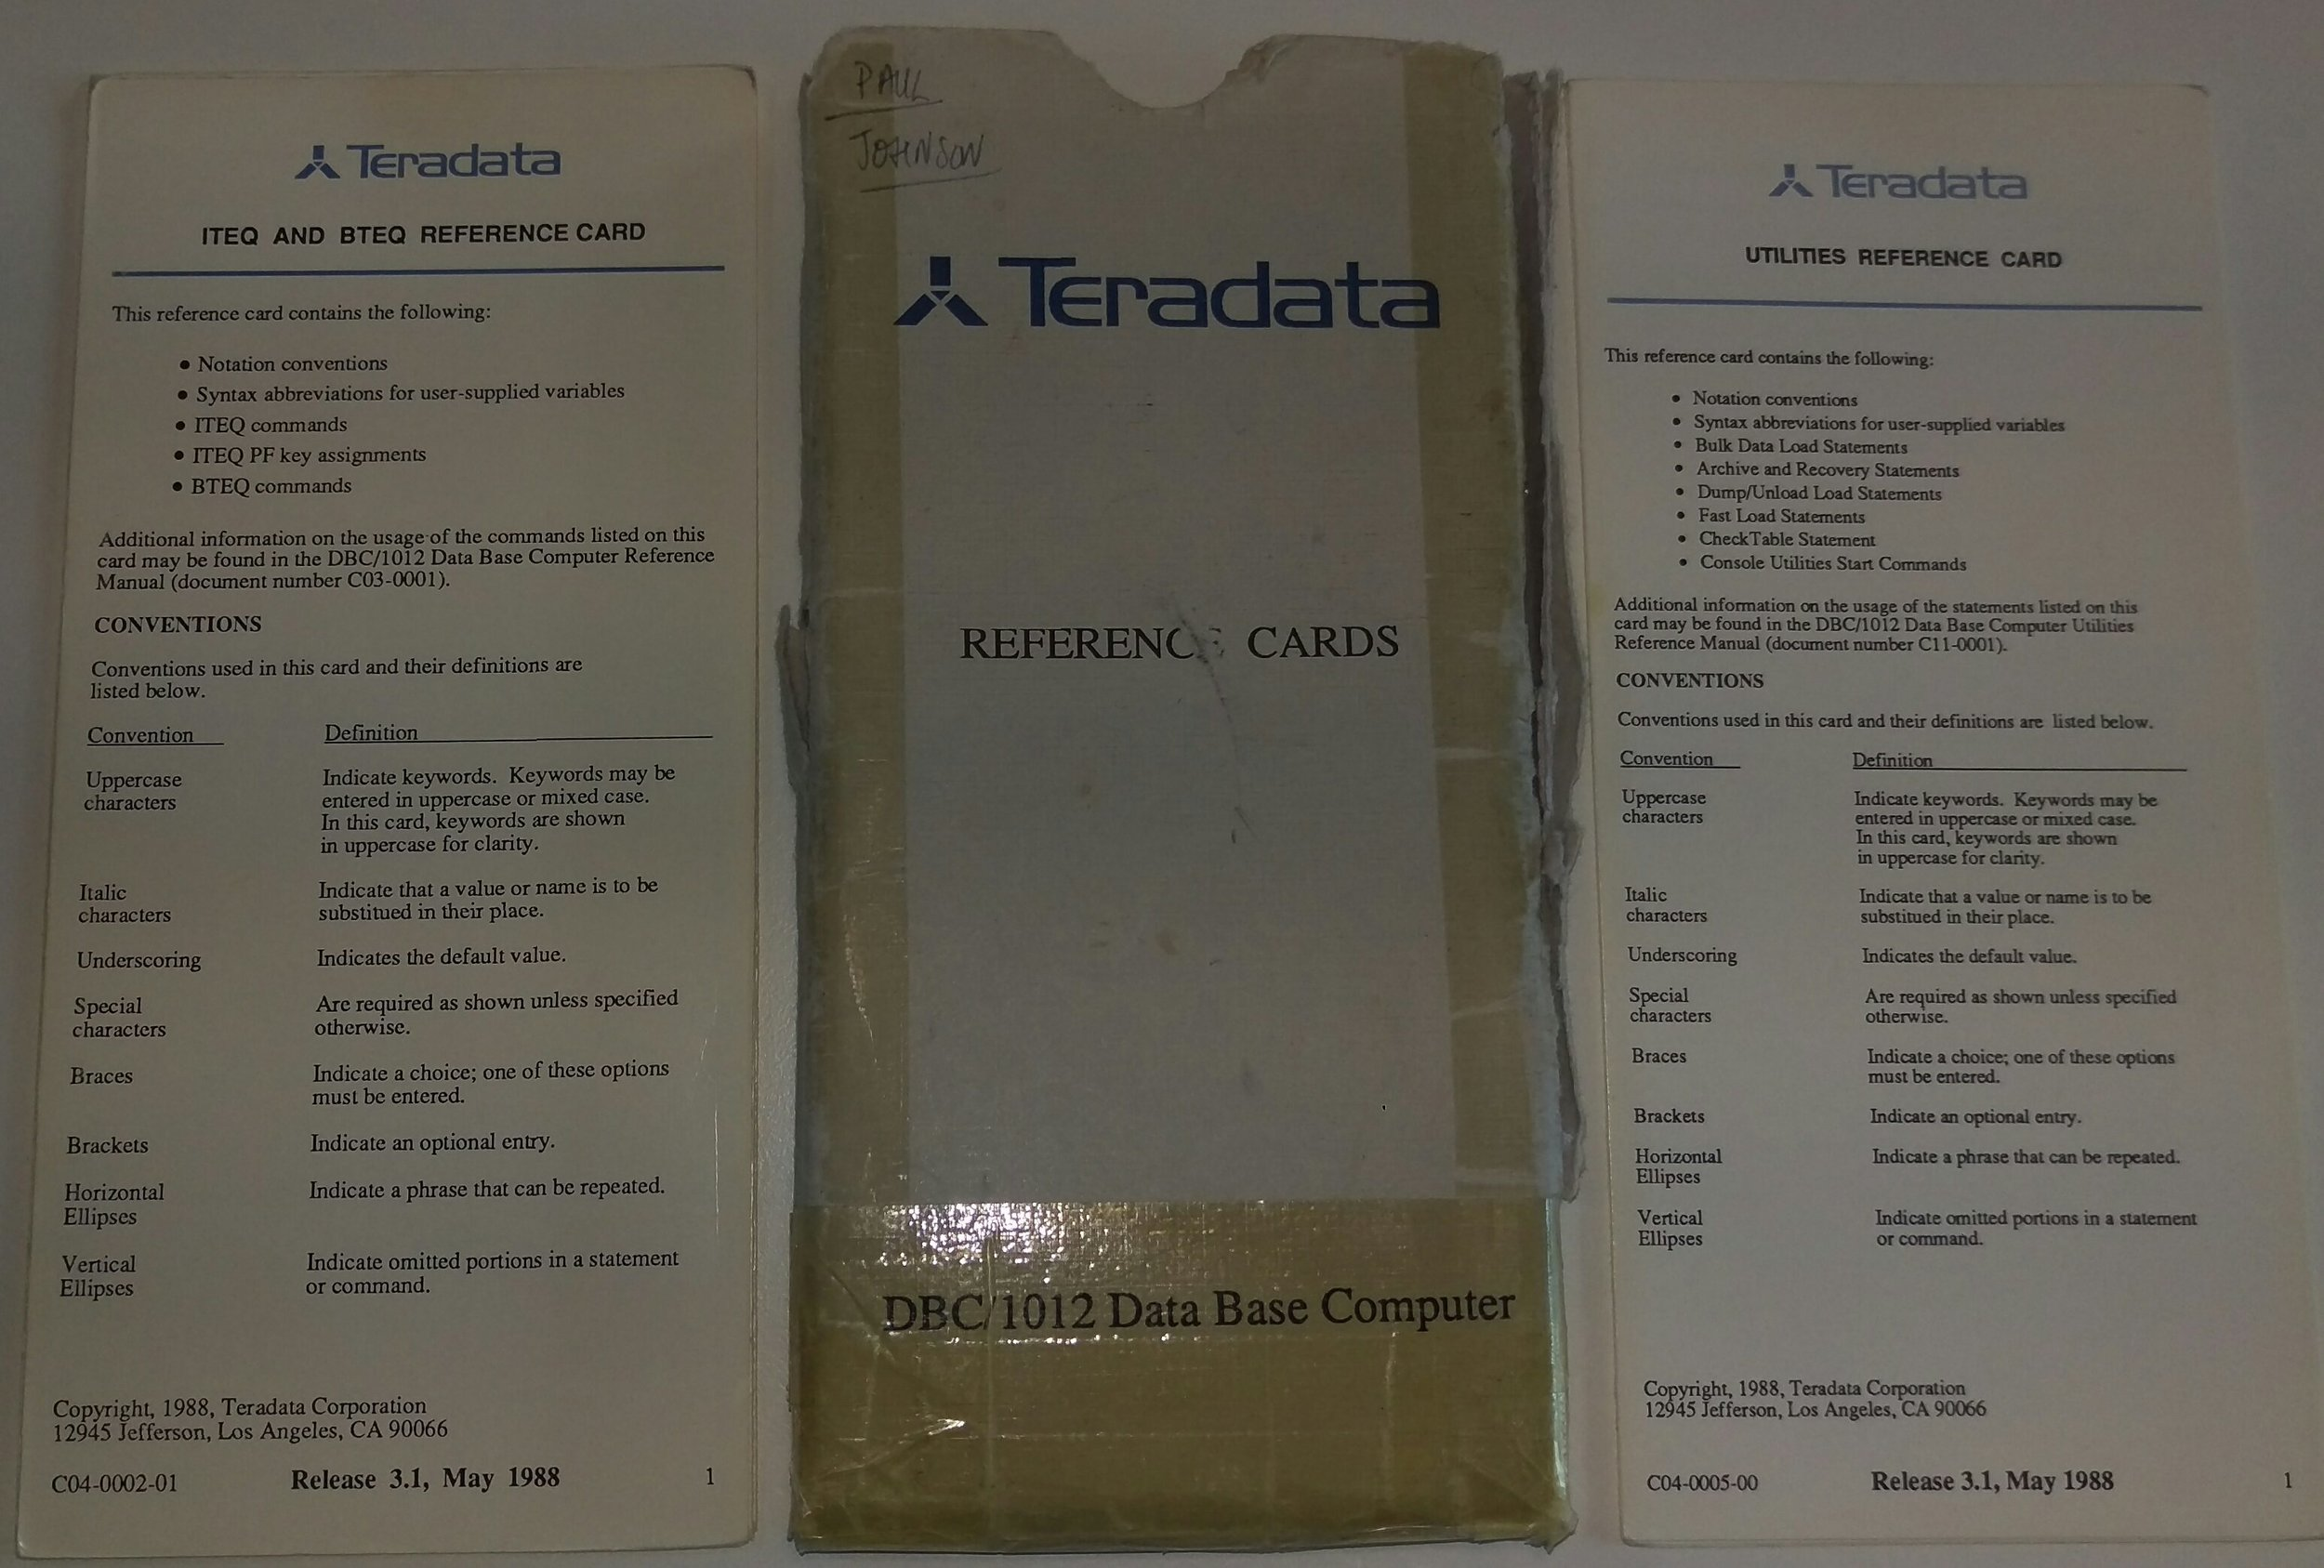 Teradata ITEQ/BTEQ & Utilities Reference Cards.